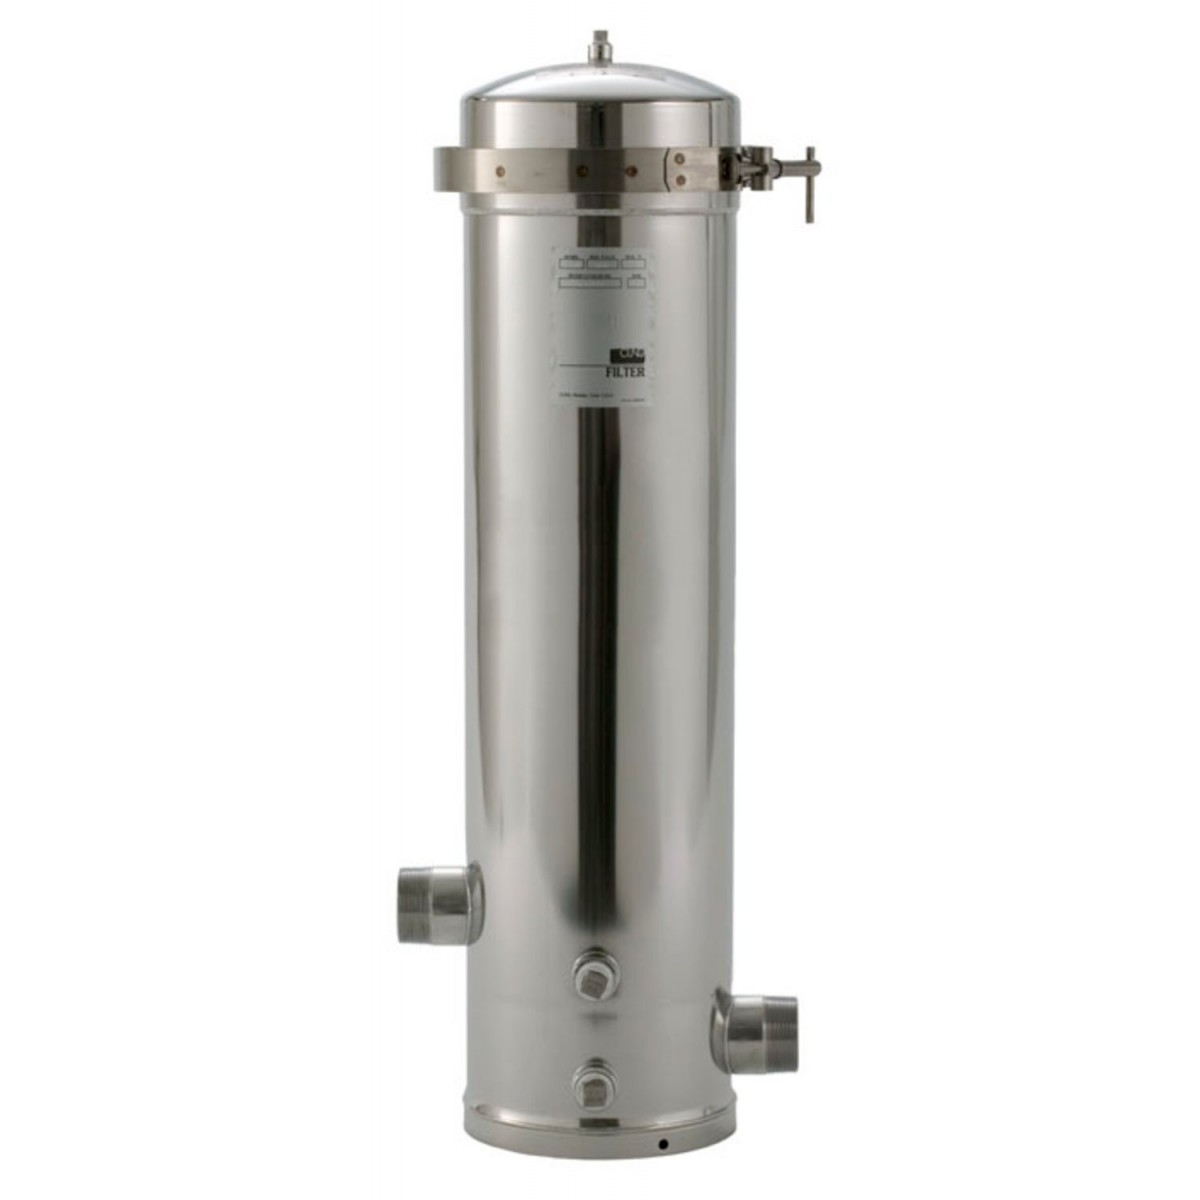 Ss12 Epe 316l Whole House Stainless Steel Filter Housing